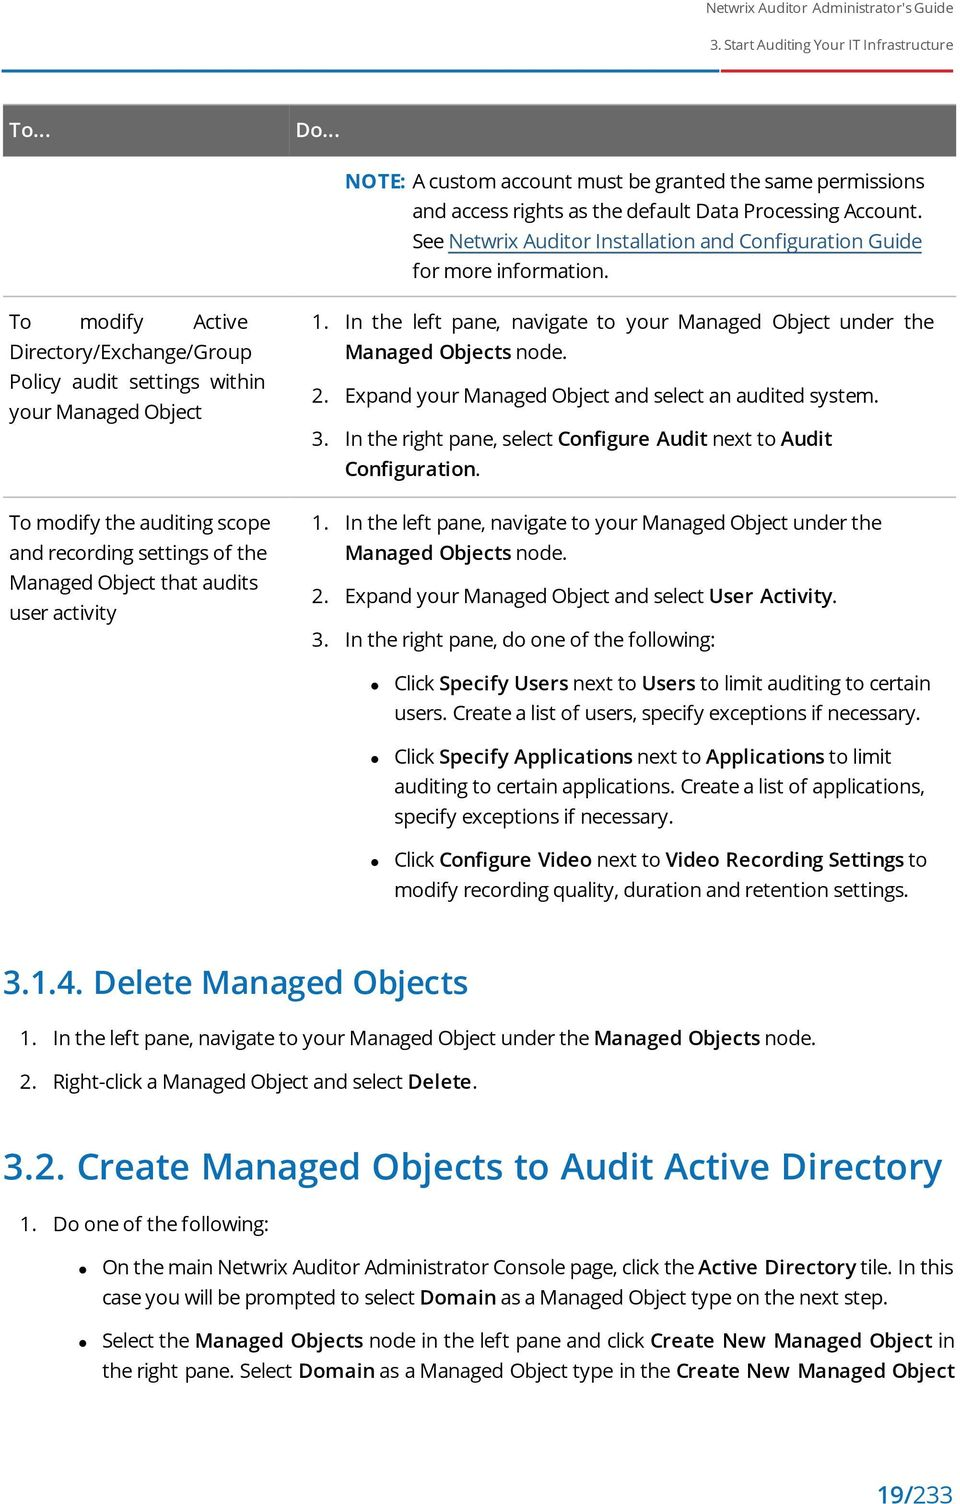 To modify Active Directory/Exchange/Group Policy audit settings within your Managed Object To modify the auditing scope and recording settings of the Managed Object that audits user activity 1.